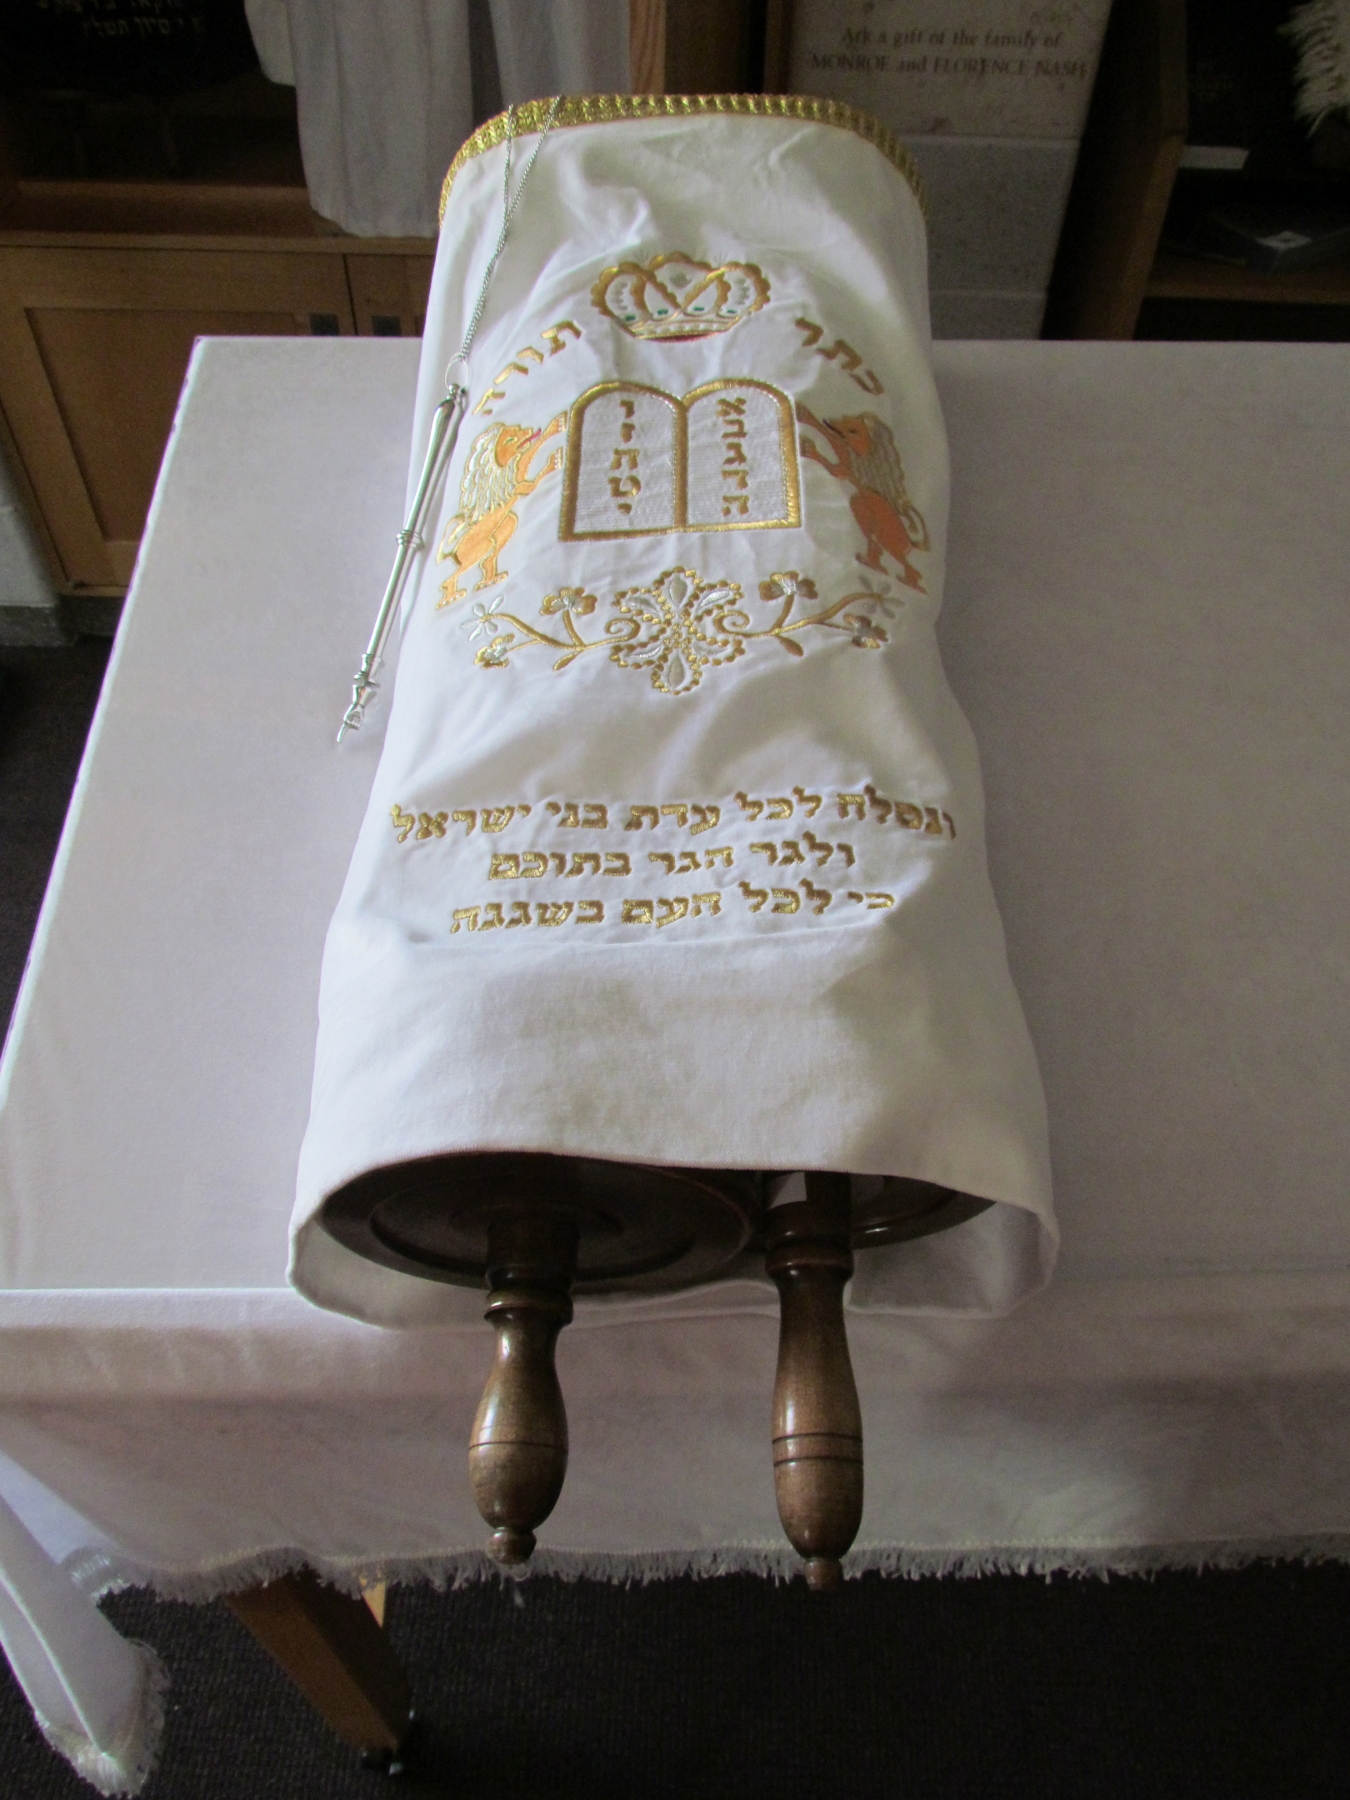 Torah Cover with Yad from the Slifka Center